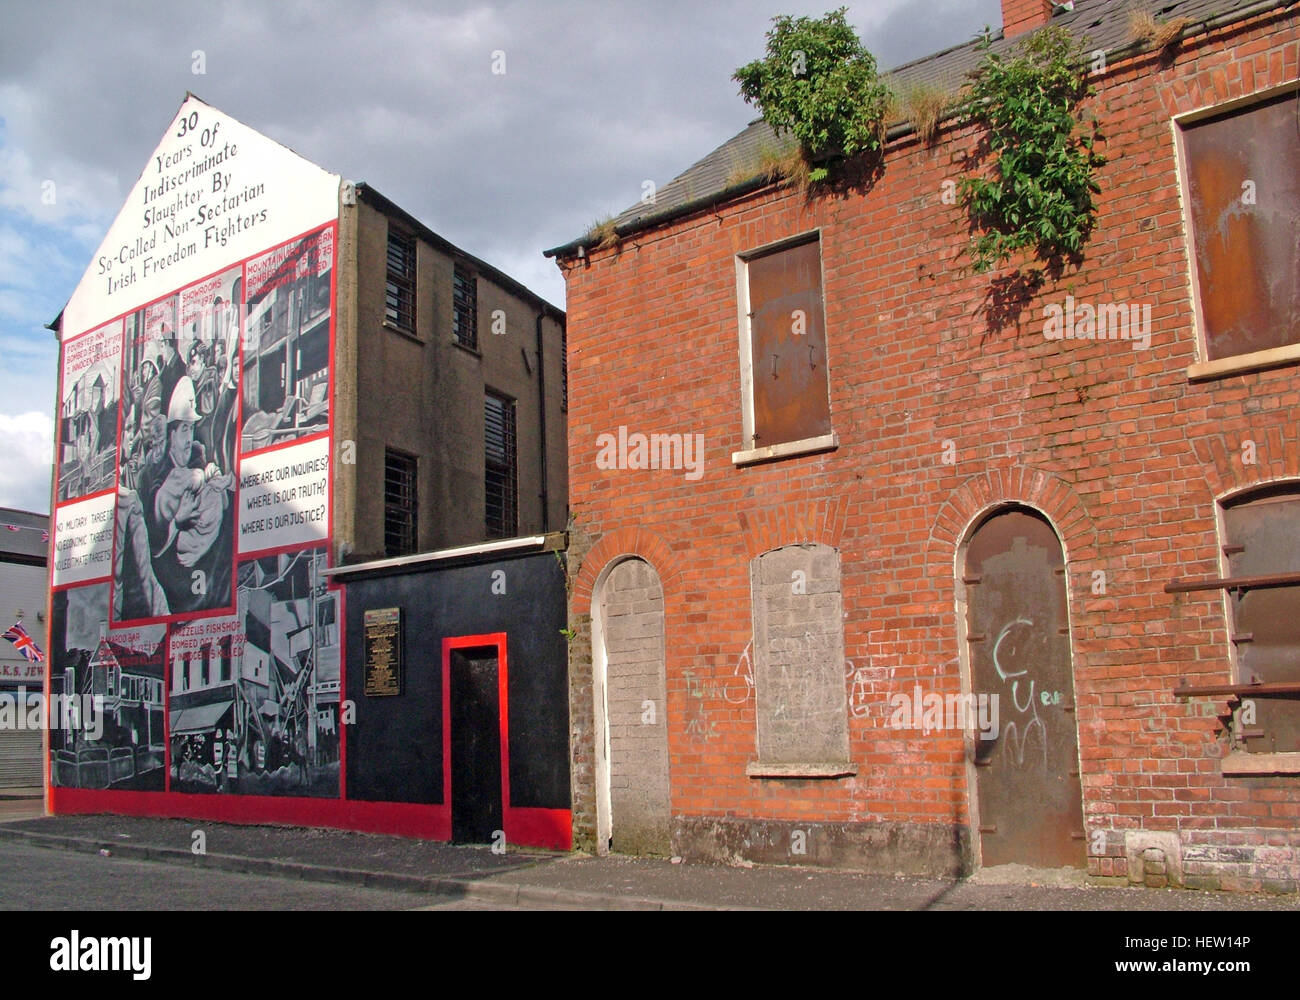 Unionist,British,Shankil,rd,painting,art,artist,martyr,fighter,para,paramilitary,soldier,wall,gable,end,gable end,community,protestant,Shankill Road Mural,West,West Belfast,NI,Northern Ireland,thirty,years,of,slaughter,30,30 years of slaughter,terrace,terraced,house,houses,GoTonySmith,@HotpixUK,Tony,Smith,UK,GB,Great,Britain,United,Kingdom,Irish,British,Ireland,problem,with,problem with,issue with,NI,Northern,Northern Ireland,Belfast,City,Centre,Art,Artists,the,troubles,The Troubles,Good Friday Agreement,Peace,honour,painting,wall,walls,tribute,unionism,Fight,Justice,West,Beal,feirste,martyrs,social,tour,tourism,tourists,urban,six,counties,6,backdrop,county,Antrim,DUP,democratic Unionist,red hand,of Ulster,Red Hand Of Ulster,Shankill,Rd,road,Shankill Road,streets of Belfast,protestant,religion,intolerance,prejudice,Buy Pictures of,Buy Images Of,Images of,Stock Images,Tony Smith,United Kingdom,Great Britain,British Isles